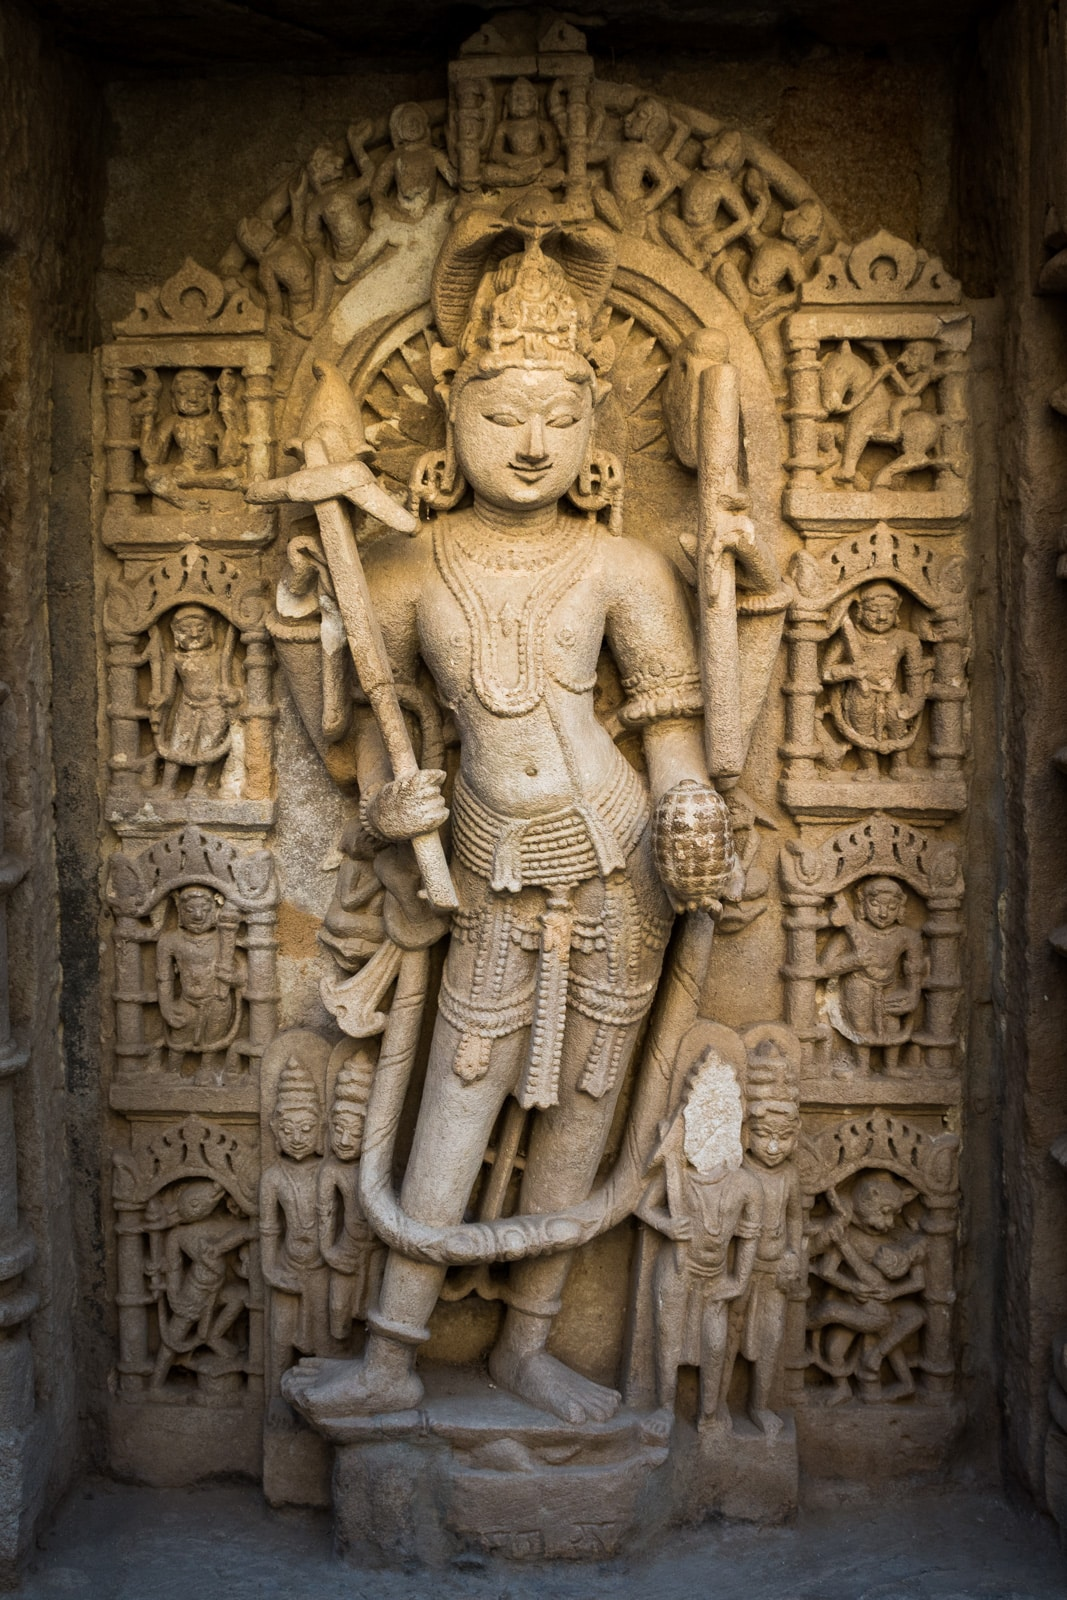 A well-preserved carved statue in Rani Ki Vav stepwell in Patan, Gujarat state, India.